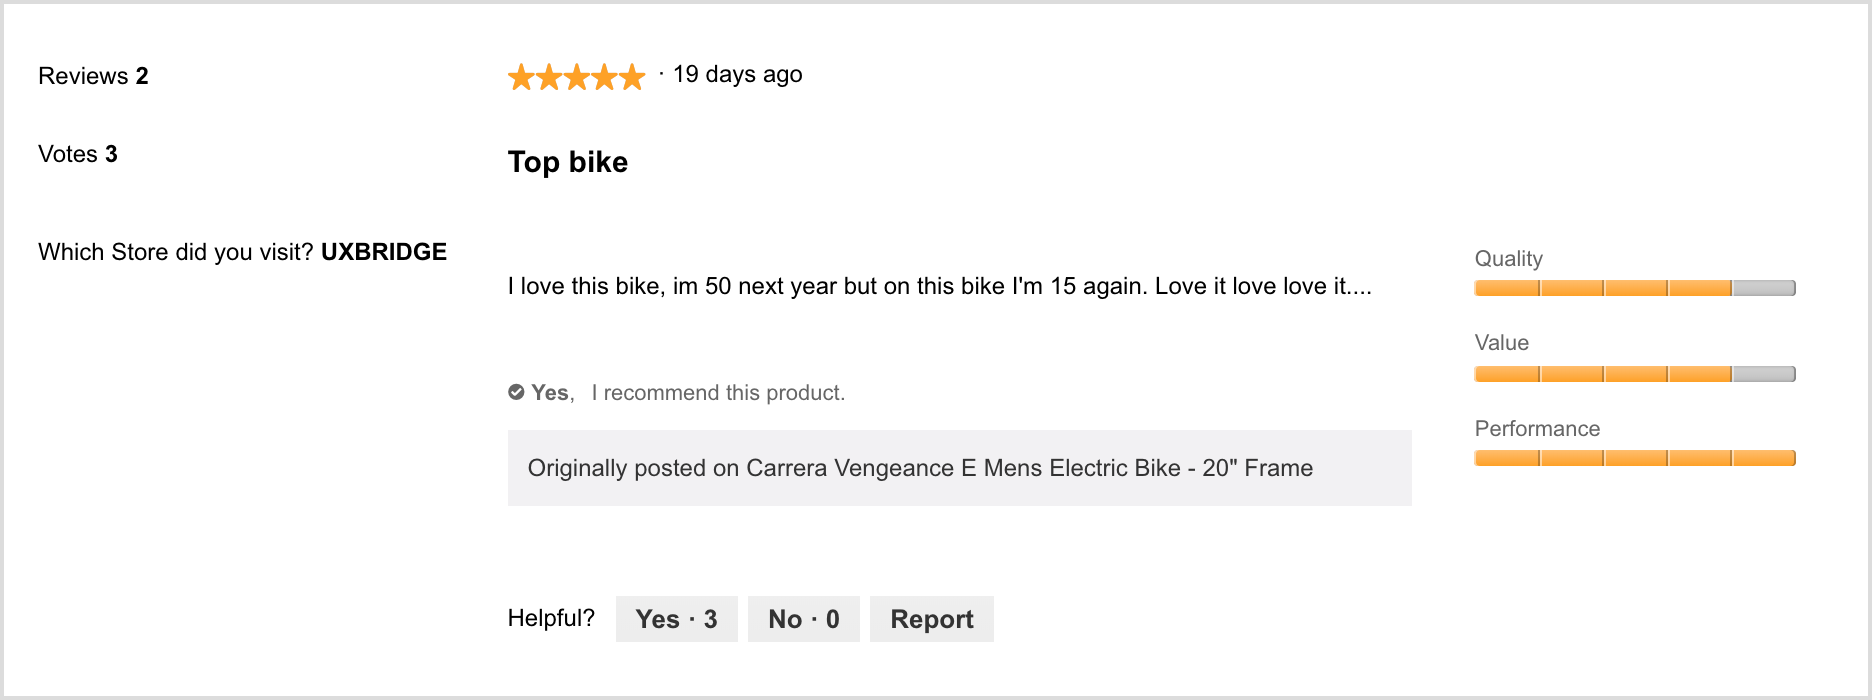 Ebike Retailer Review Example